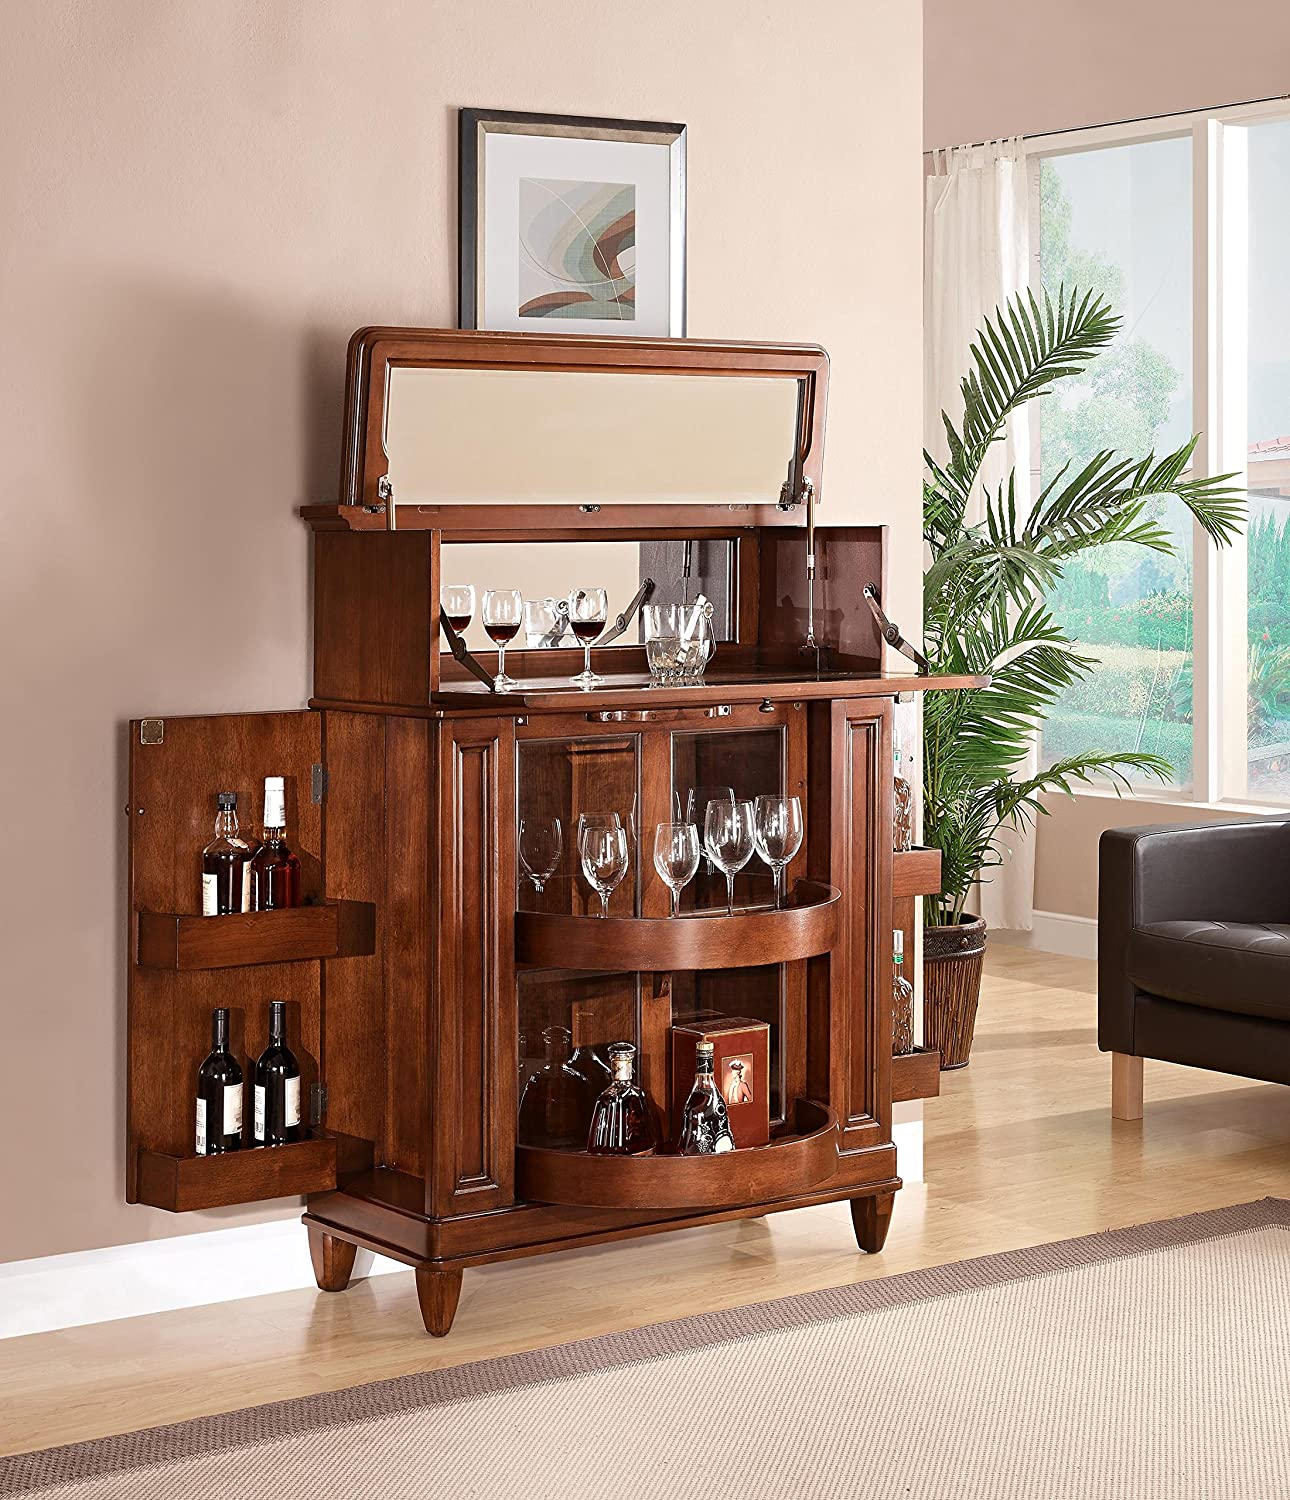 Wood home dining room bar cabinet furniture bottle stemware storage glass door ebay Home bar furniture amazon